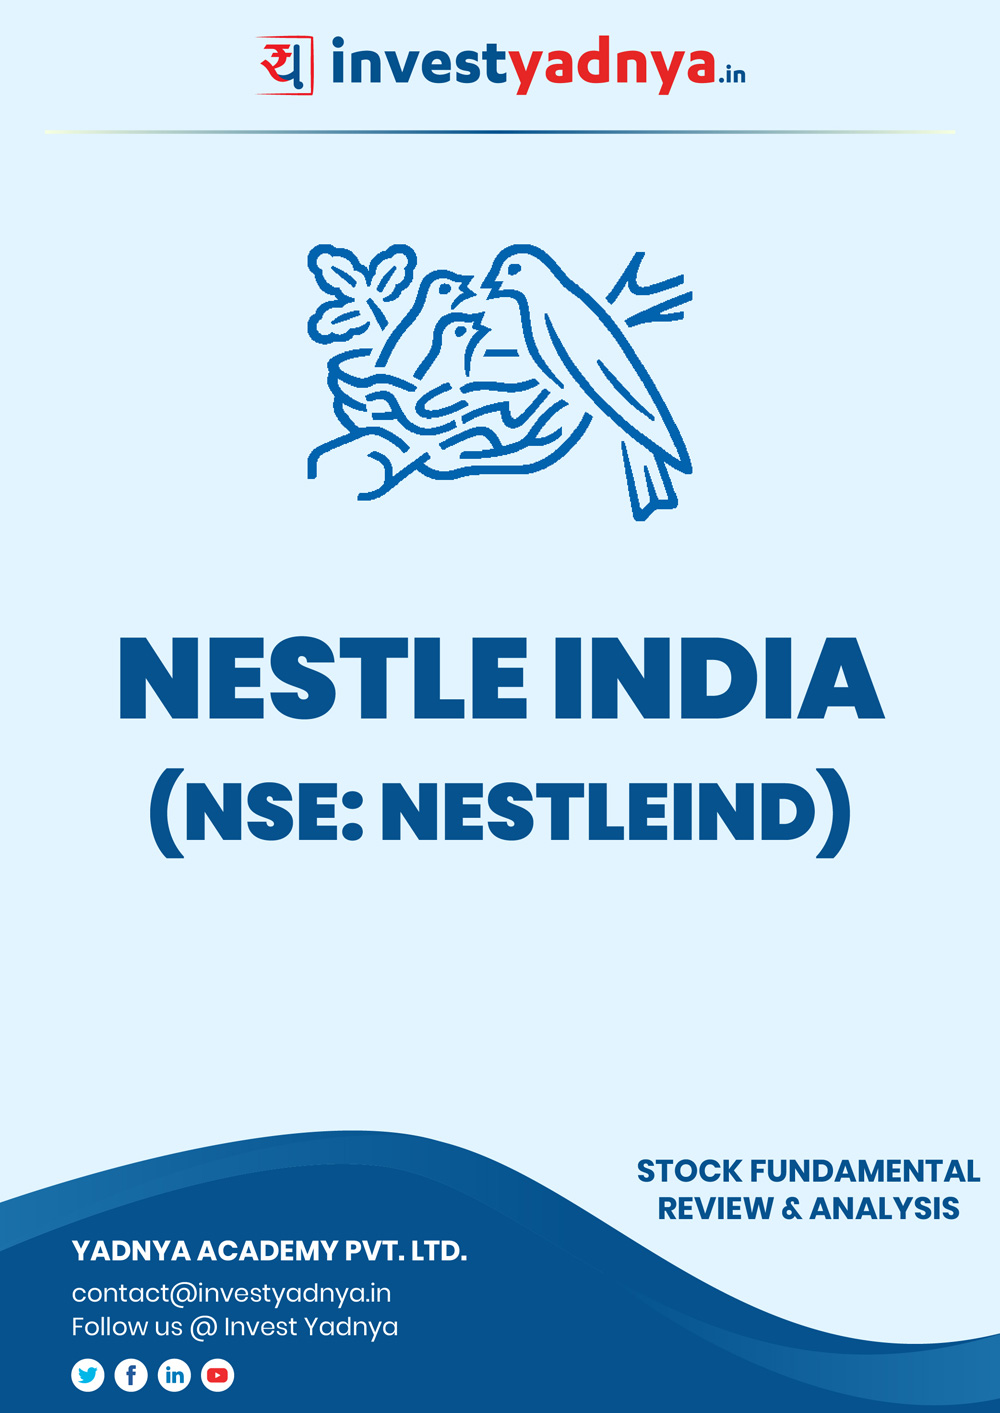 This e-book contains in-depth fundamental analysis of Nestle India considering both Financial and Equity Research Parameters. It reviews the company, industry competitors, shareholding pattern, financials, and annual performance. ✔ Detailed Research ✔ Quality Reports